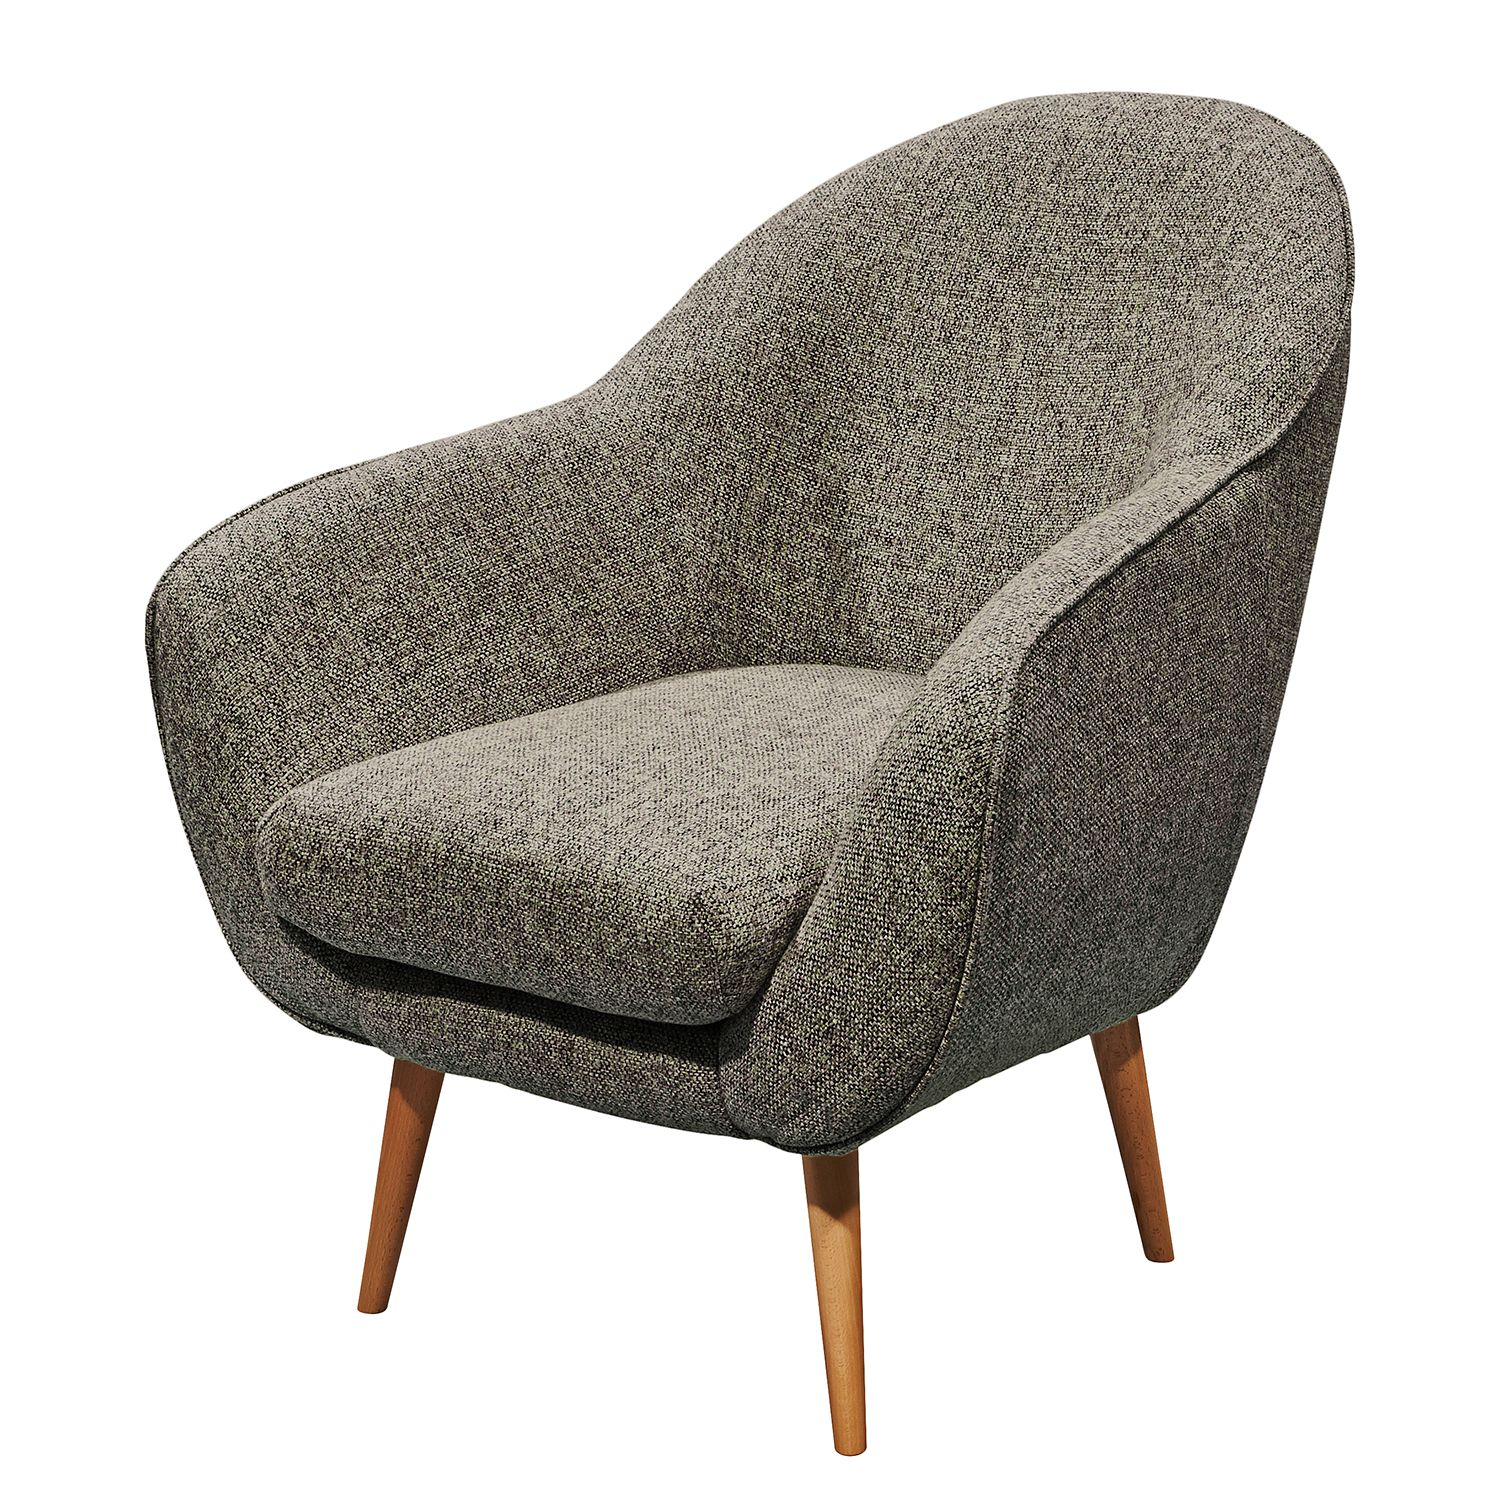 Fauteuil Donzac - Tissu - Marron / Gris, mooved